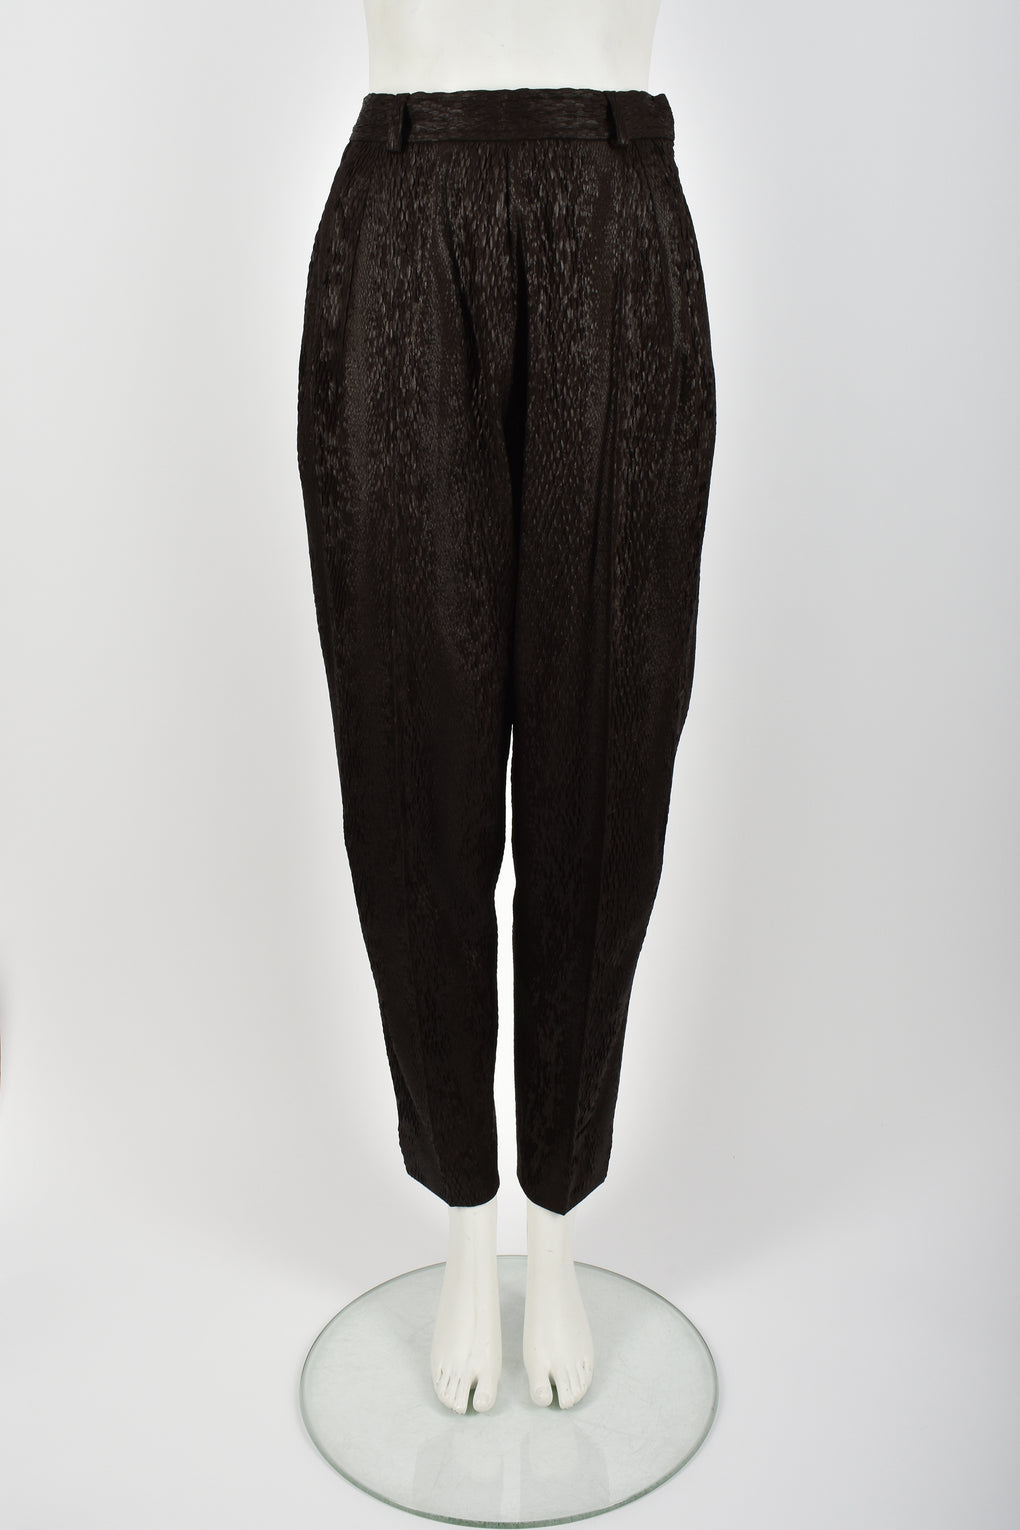 YVES SAINT LAURENT 80s snakeskin 3d textured trousers S